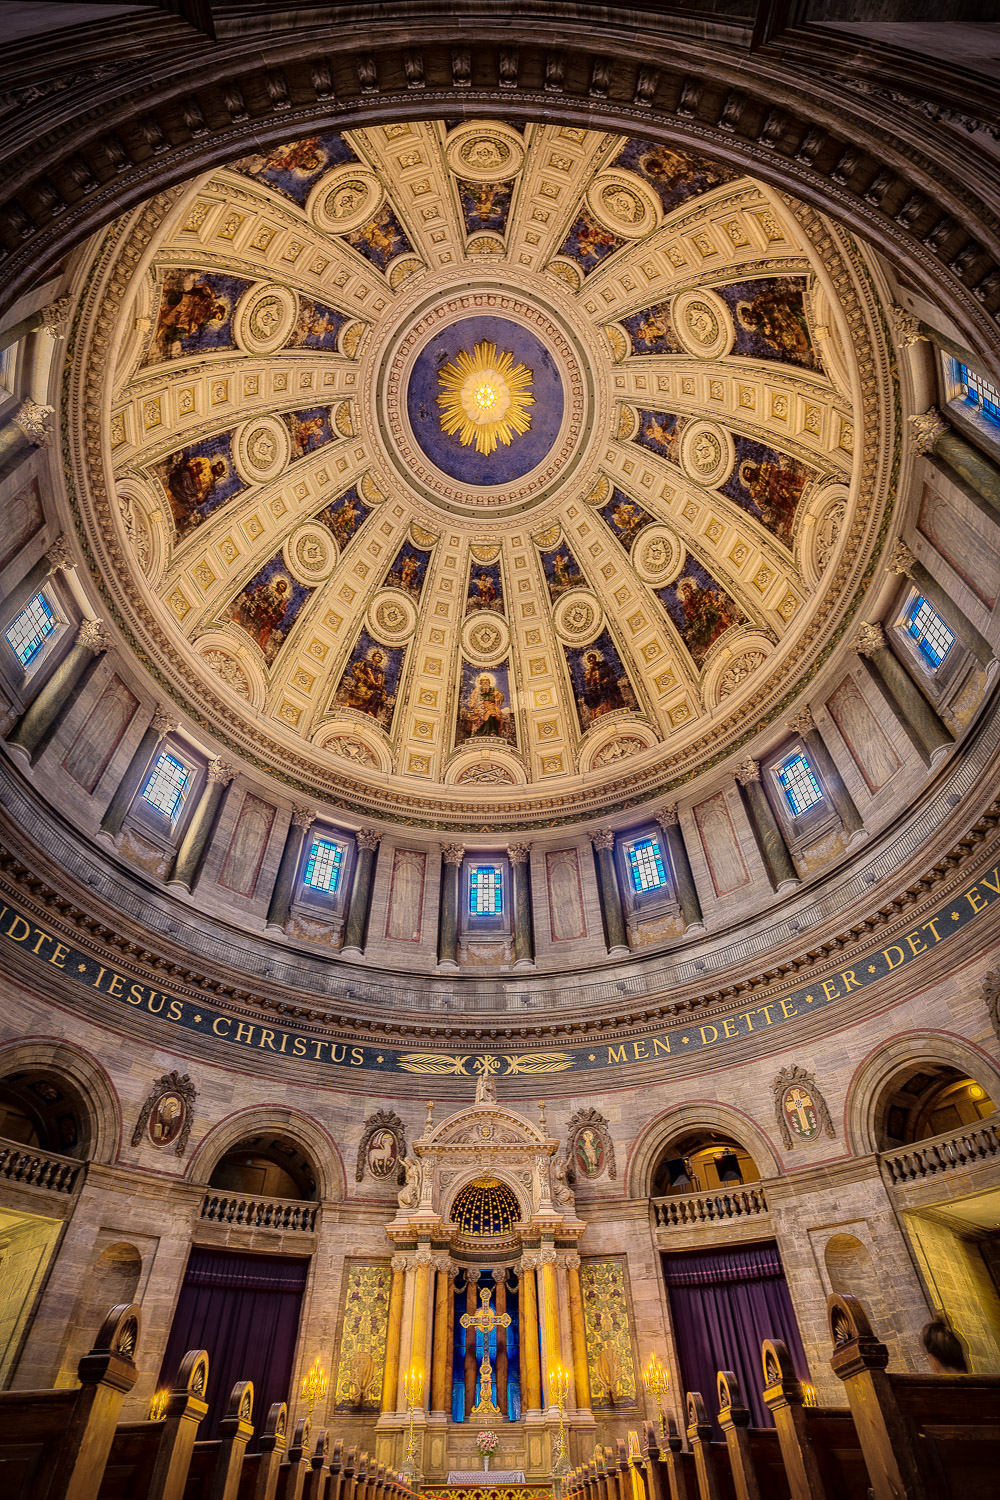 An    interior view of the dome    at the magnificent    Frederik's Church   , also known as the    Marble Church   , in    Copenhagen, Denmark    made with my    Sony A7Rii camera    and    Sony/Zeiss 16-35mm f4 lens    at 16 mm.